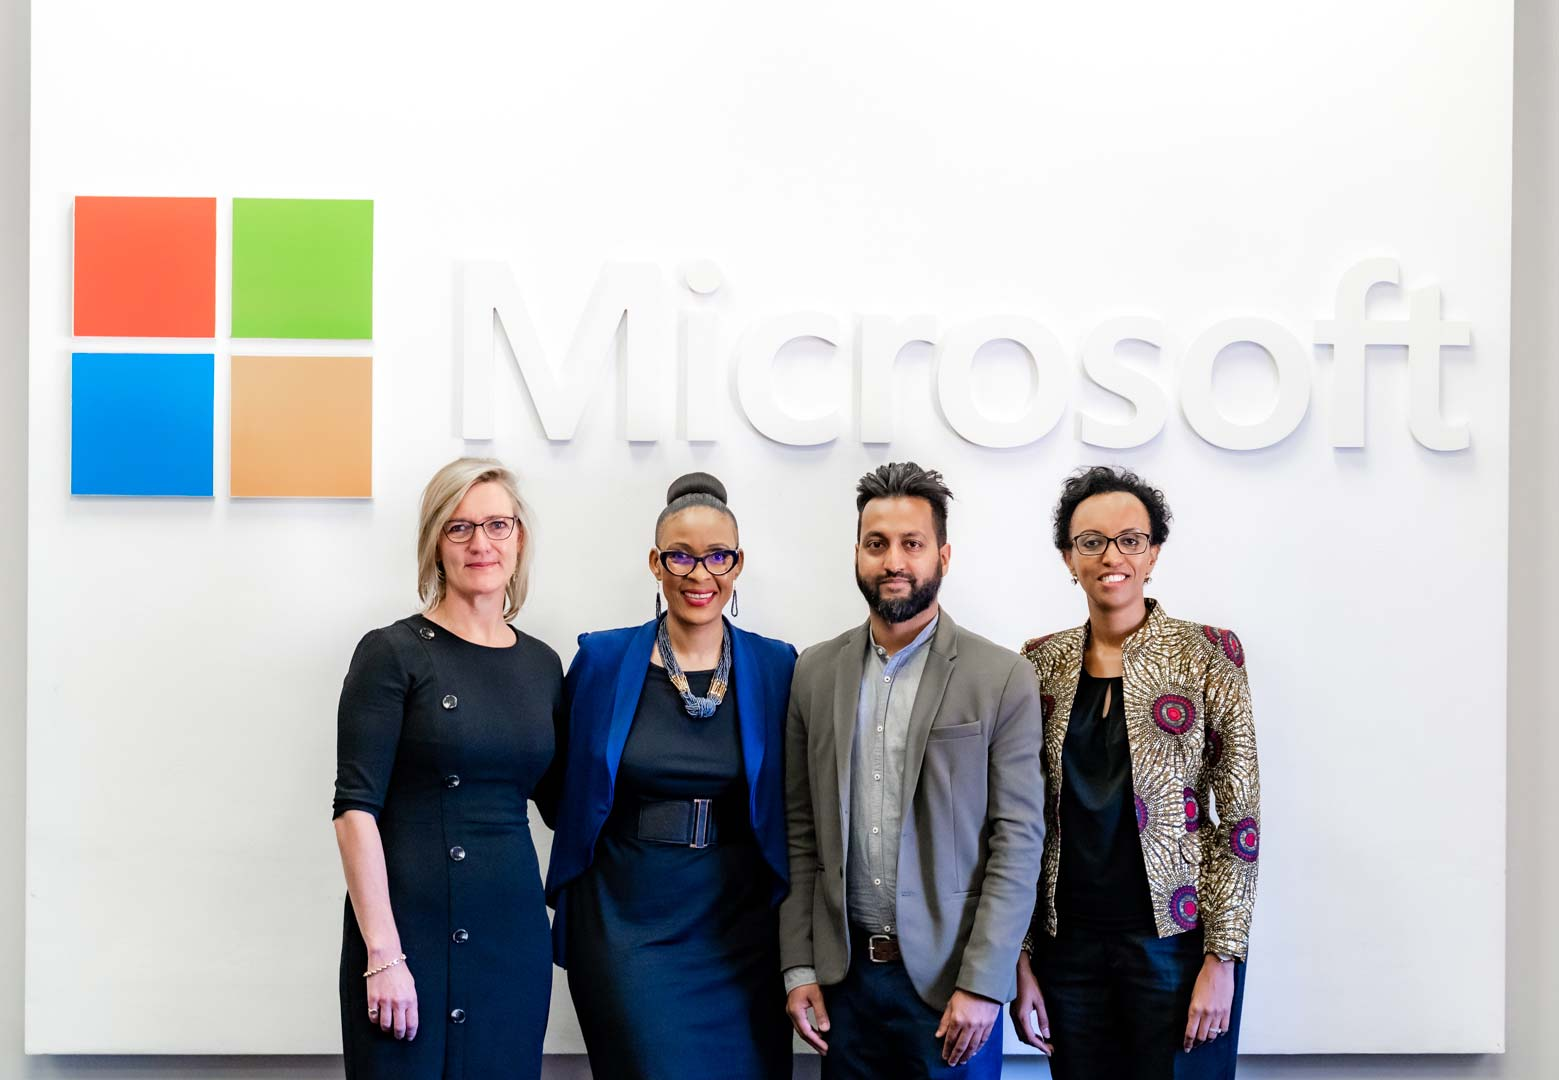 Microsoft S 4afrika Initiative How It S Impacted South Africa And The Continent Seven Years On Middle East Africa News Center